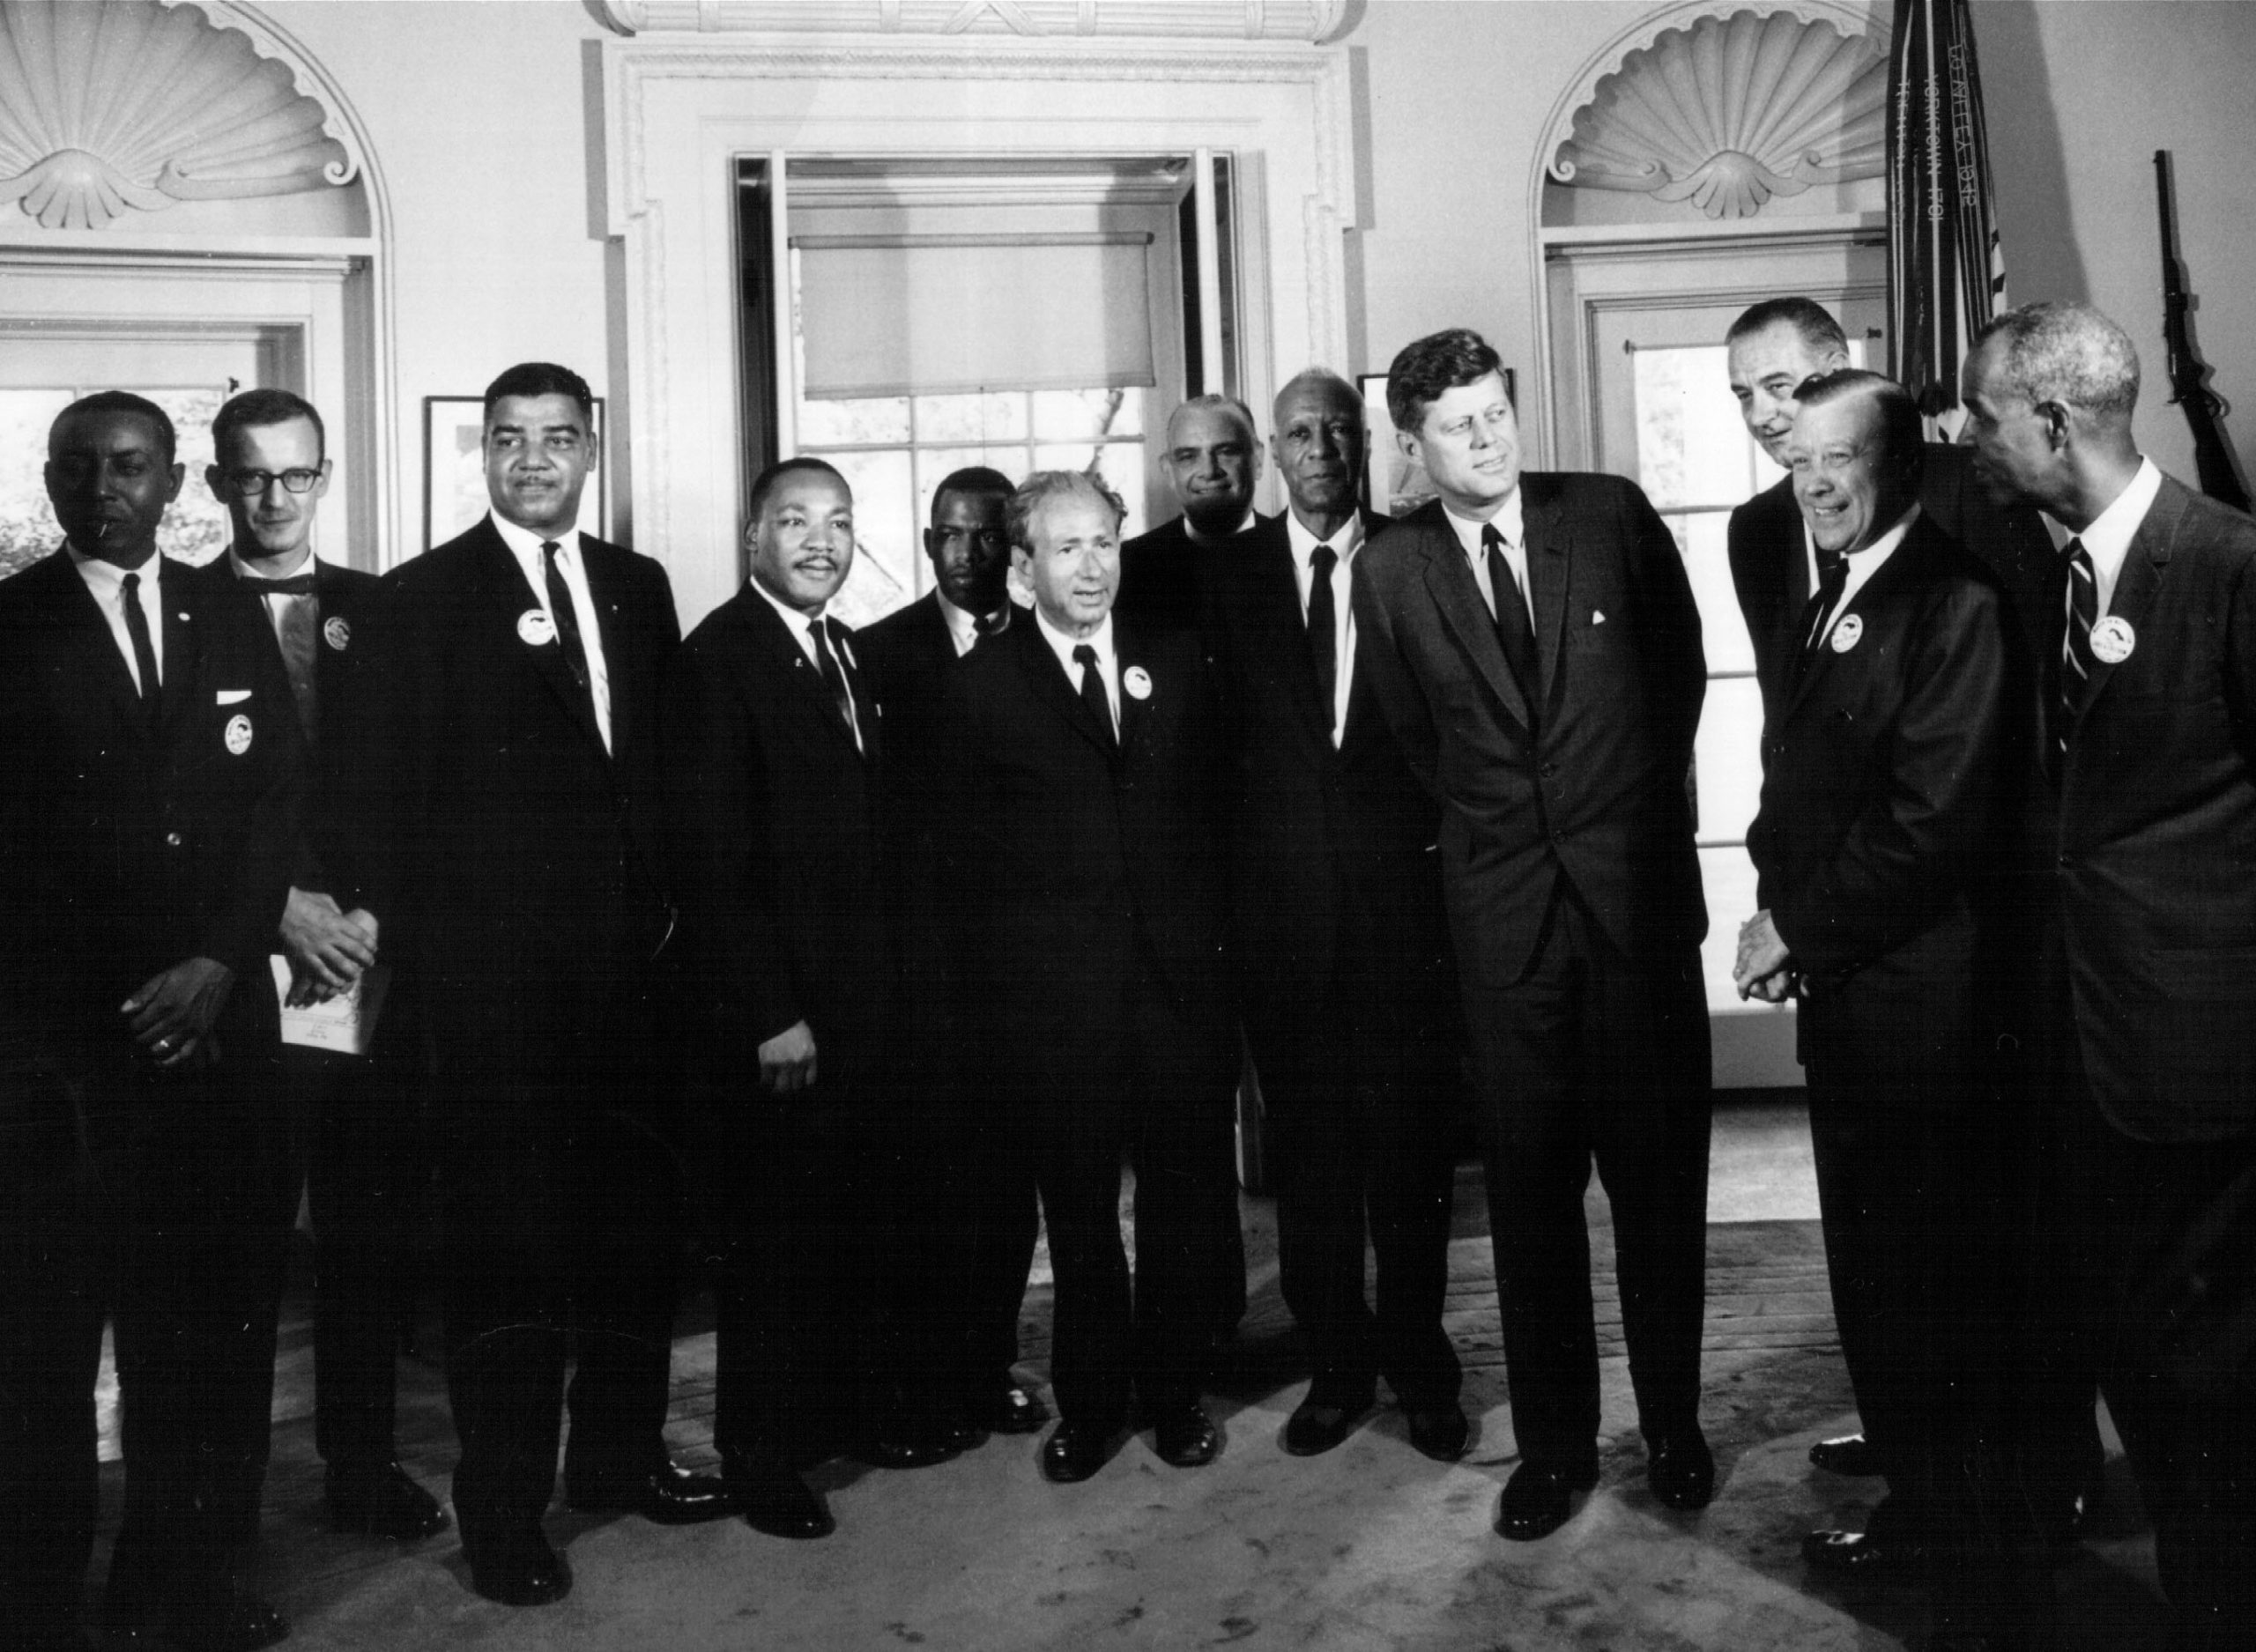 President Kennedy Meets with Civil Rights Leaders